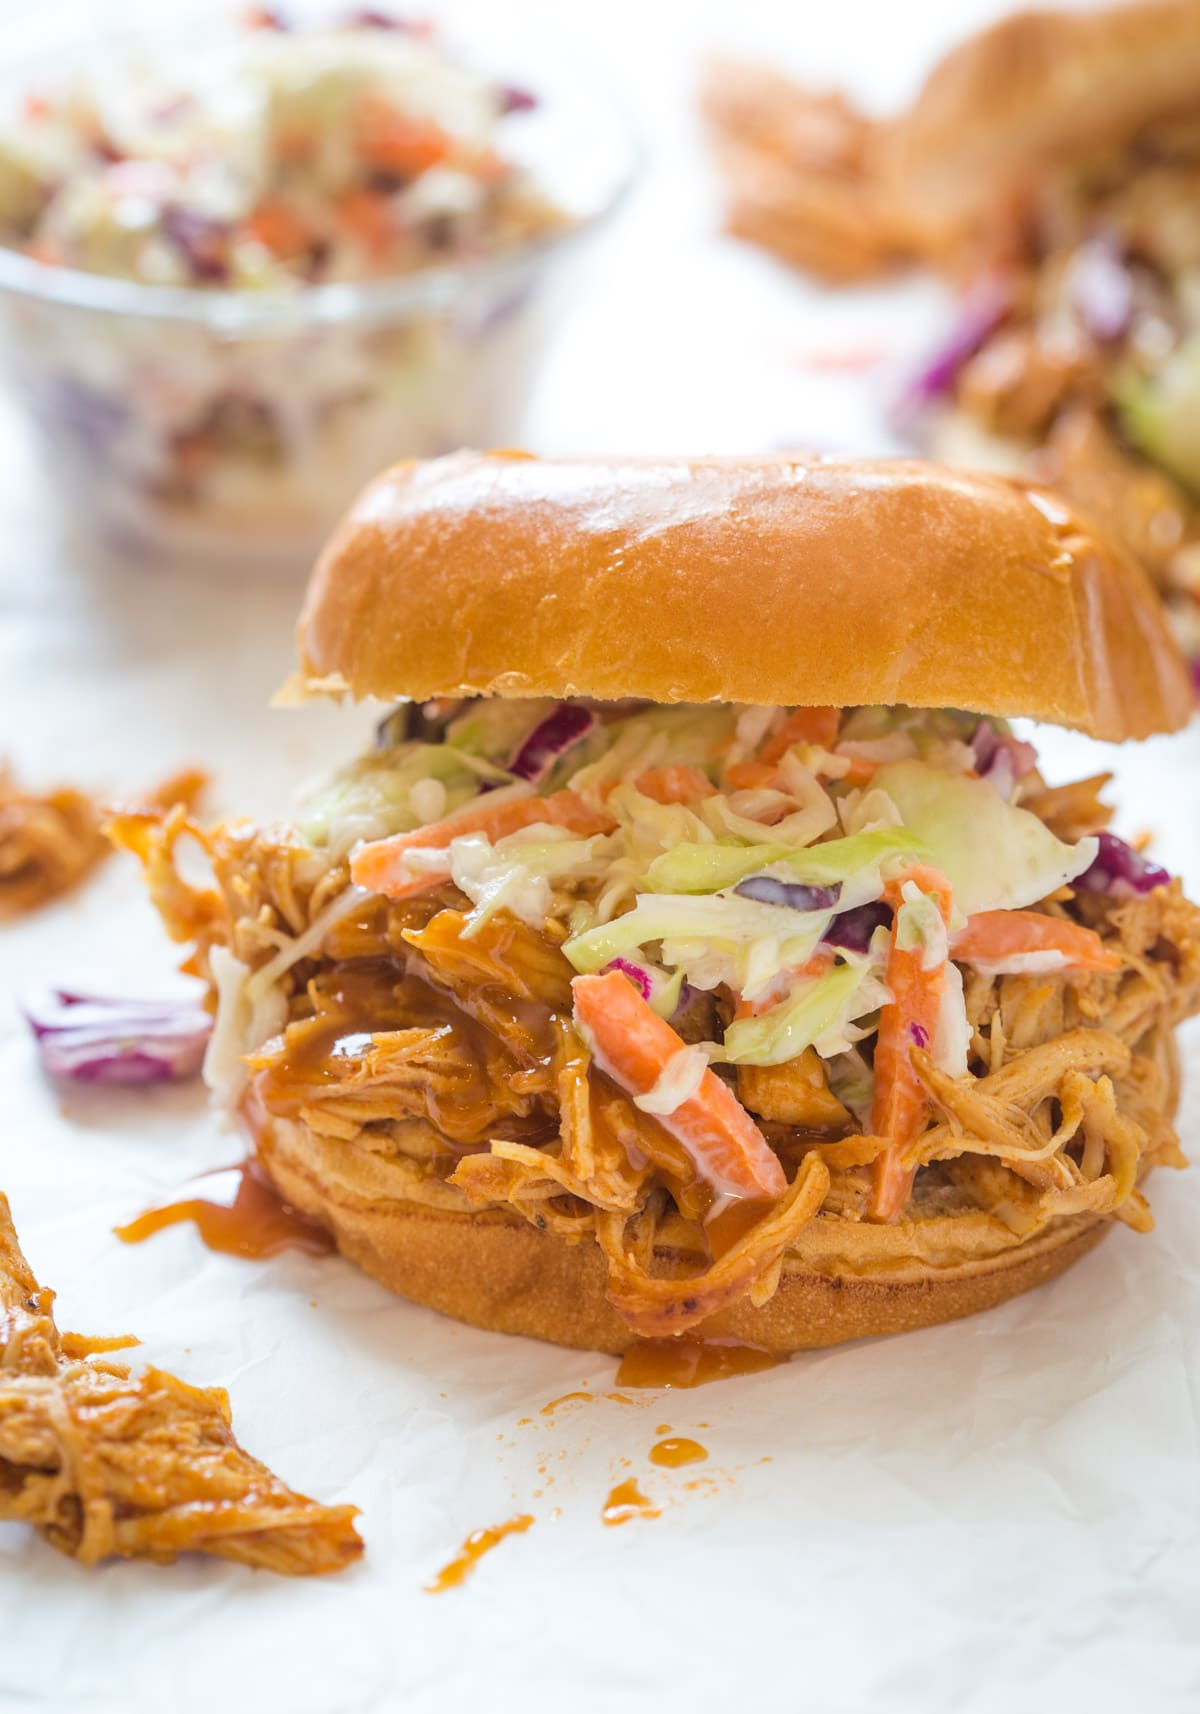 shredded bbq chicken with bbq sauce on top of a bun with coleslaw